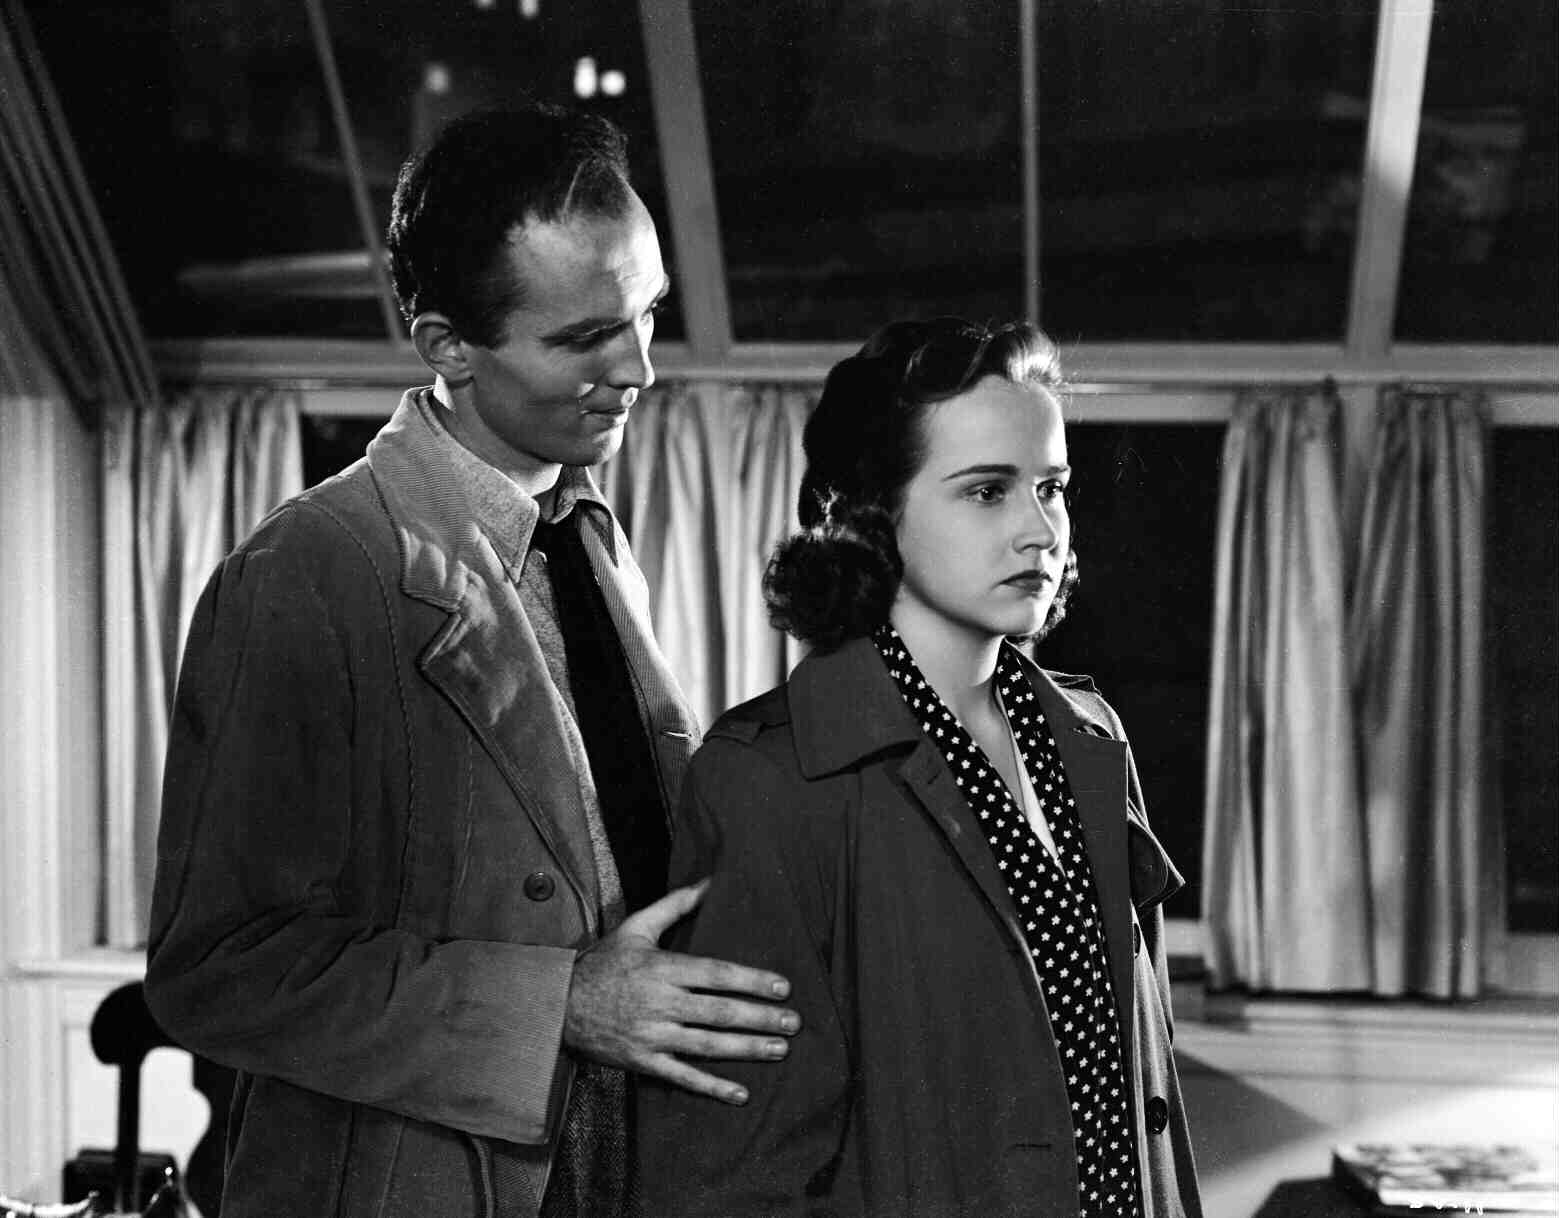 Hugh Beaumont comforts Kim Hunter as she searches for her sister in The Seventh Victim (1943)